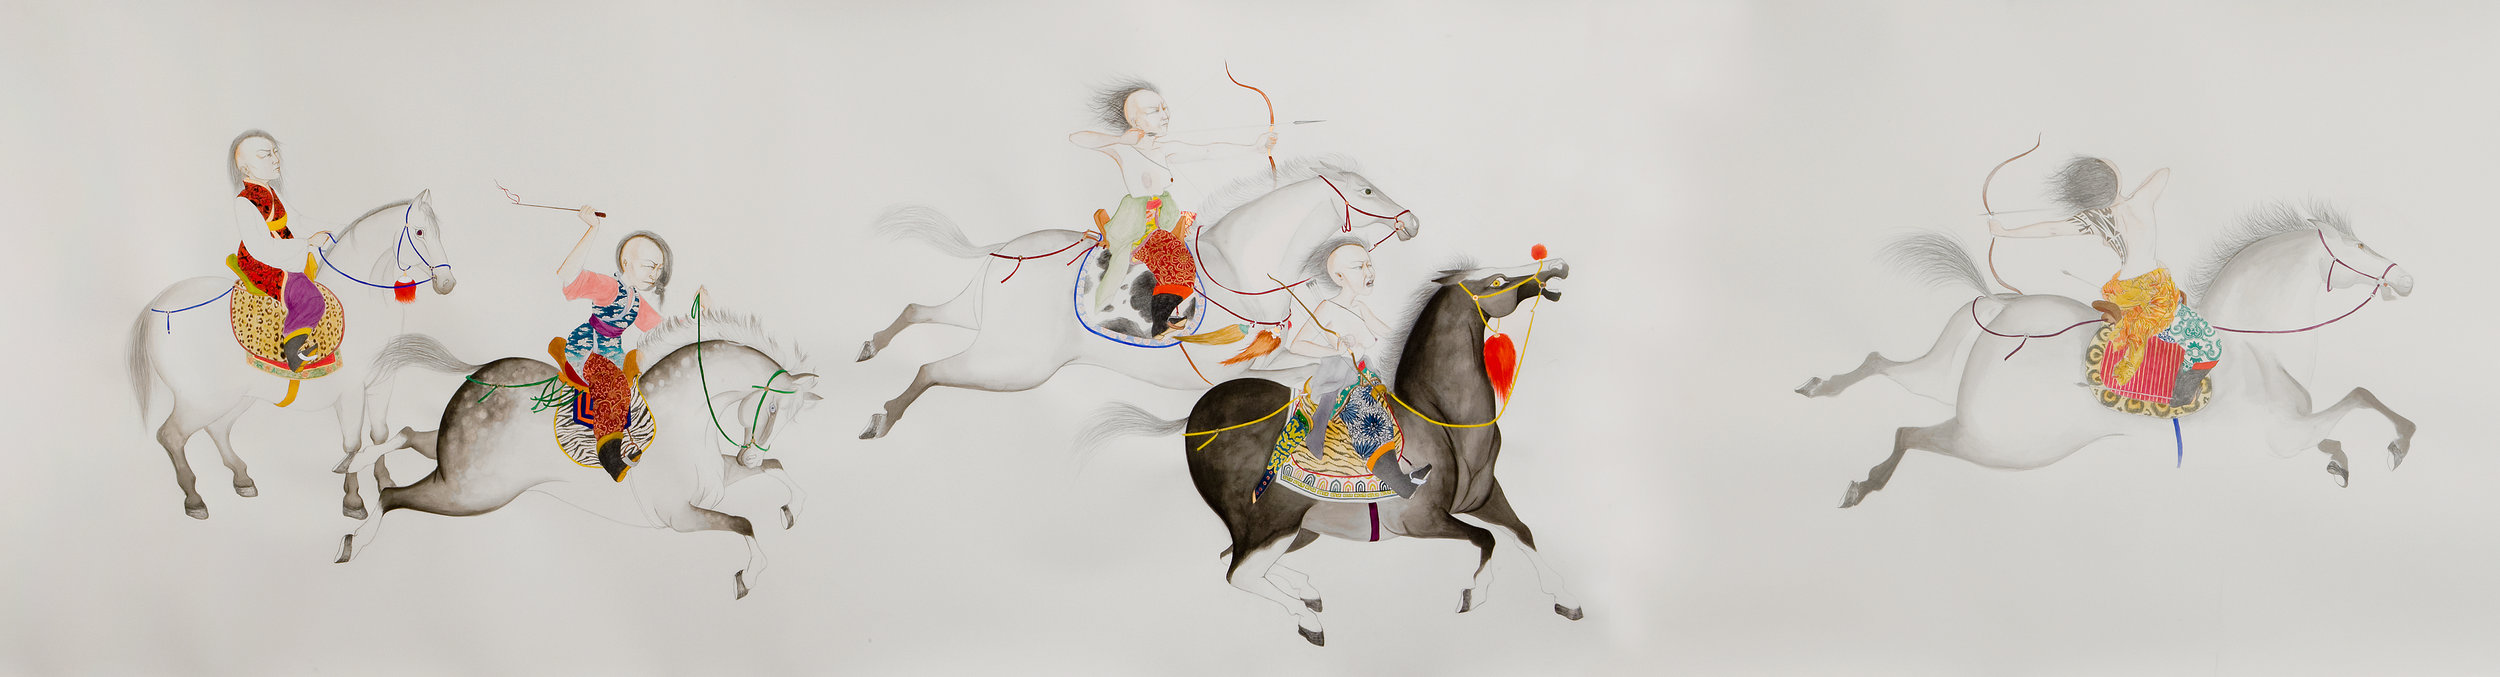 Women Warriors , 2008 Graphite, watercolor, gouache, ink on paper 50.5 X 192 inches Created during artist residency at Santa Fe Art Institute, Santa Fe, NM Private collection